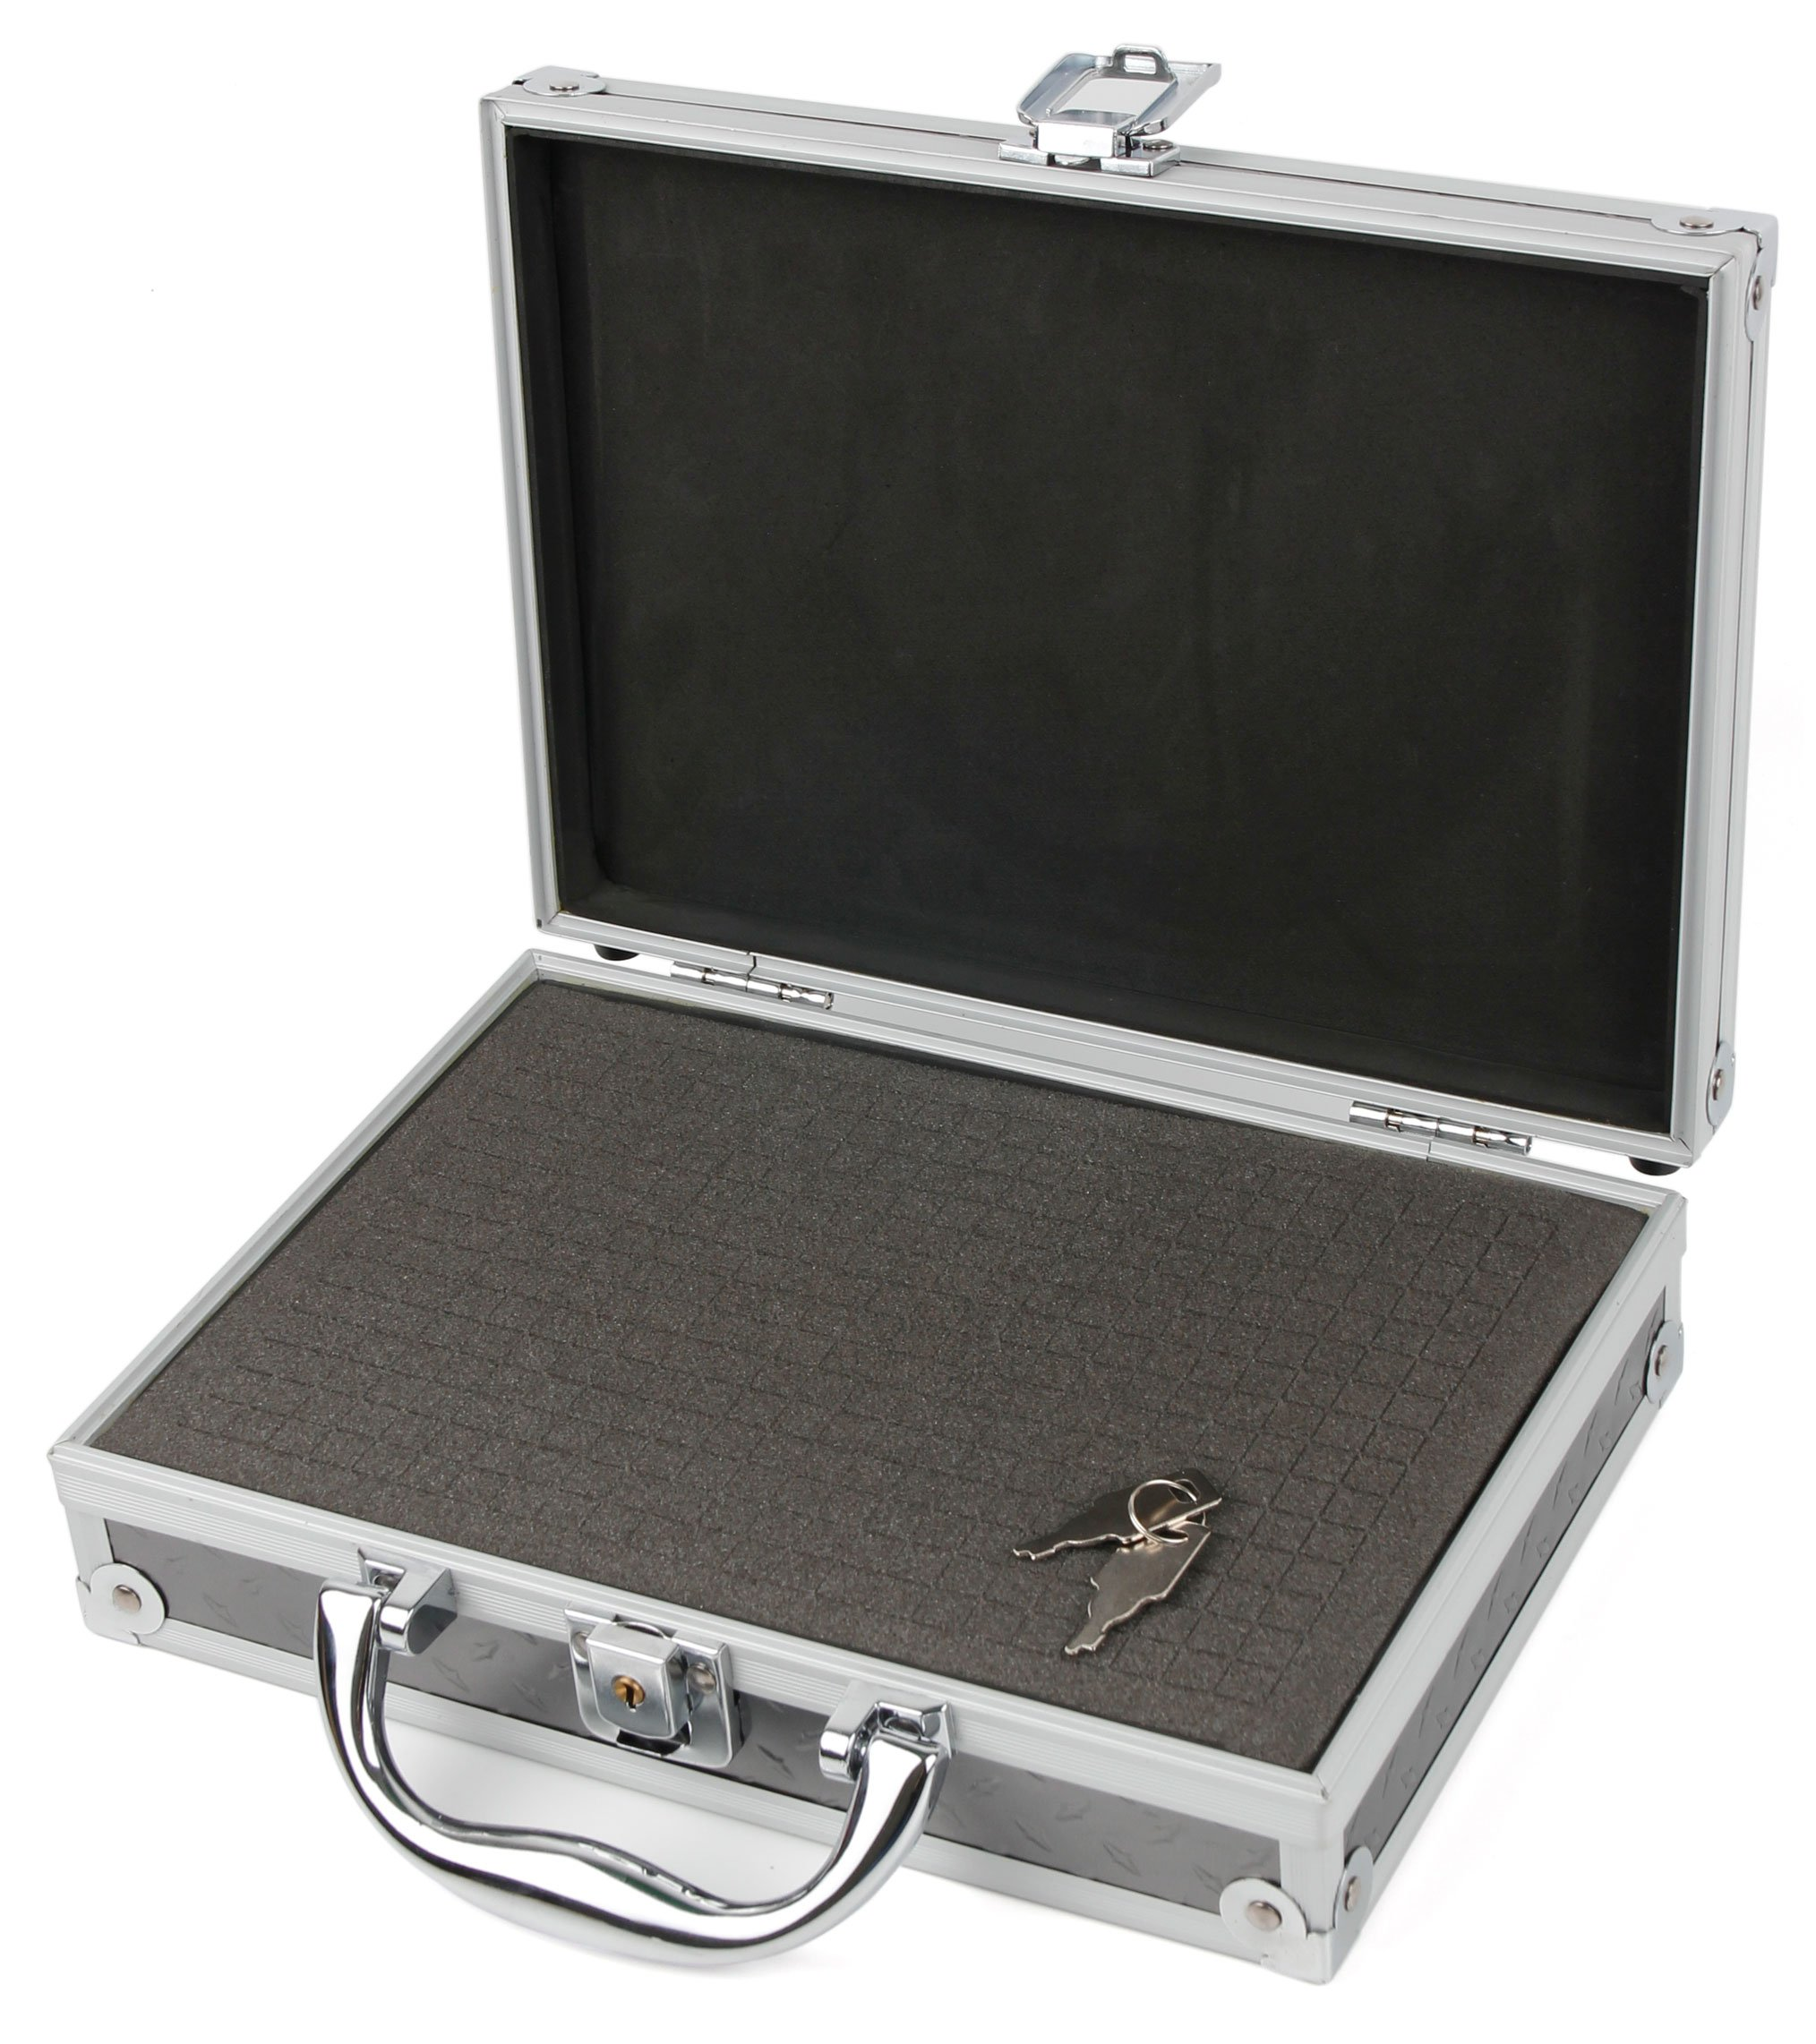 Silver Aluminium Armoured EVA 'Shell' Storage Case with Fully-Customizable & Shock-Absorbing D.I.Y Foam Interior - Compatible with Harmonicas - by DURAGADGET